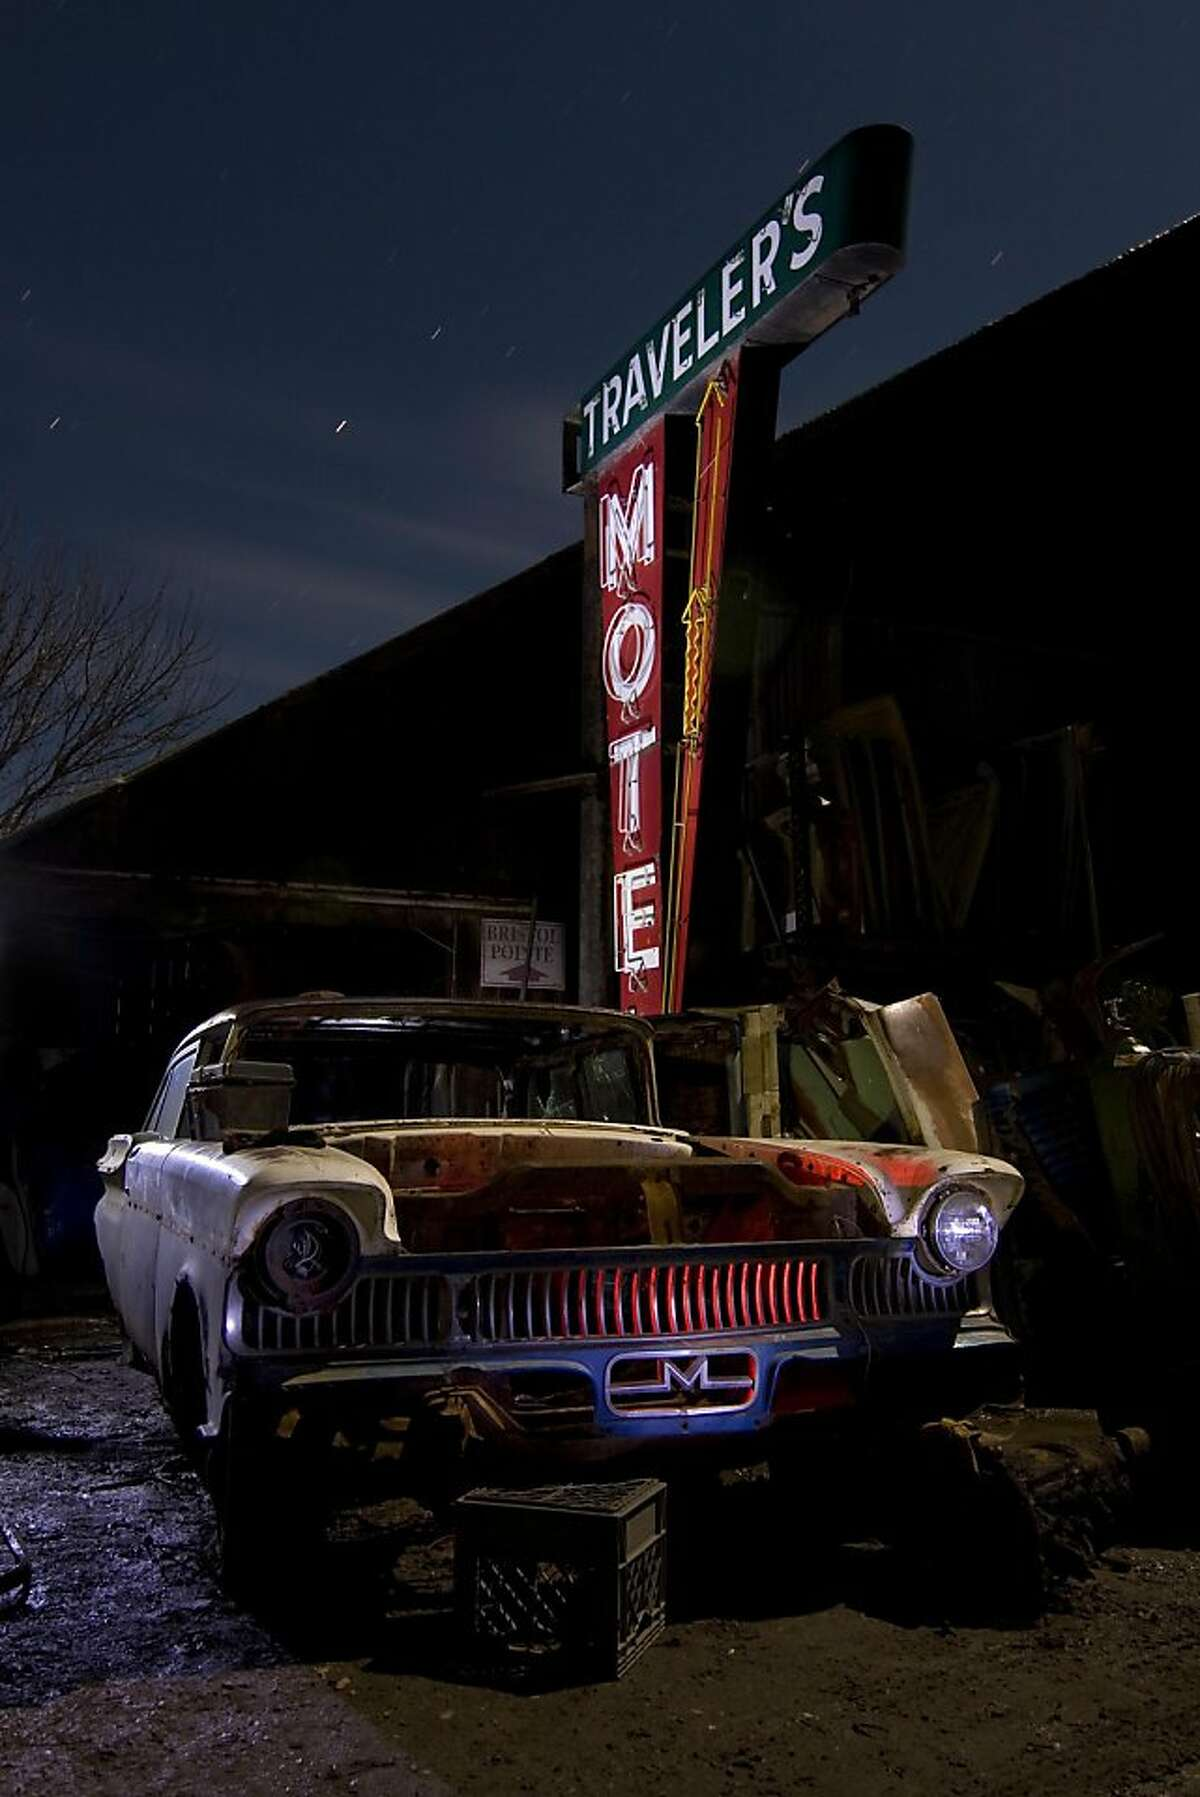 """Employing a technique known as """"light painting,"""" Troy Paiva illuminates his subjects-typically discarded automobiles-with flashlights fitted with colored gel filters. This process lends his photographs their distinctive, neon-tinged artificiality. This photo was taken in 2011."""